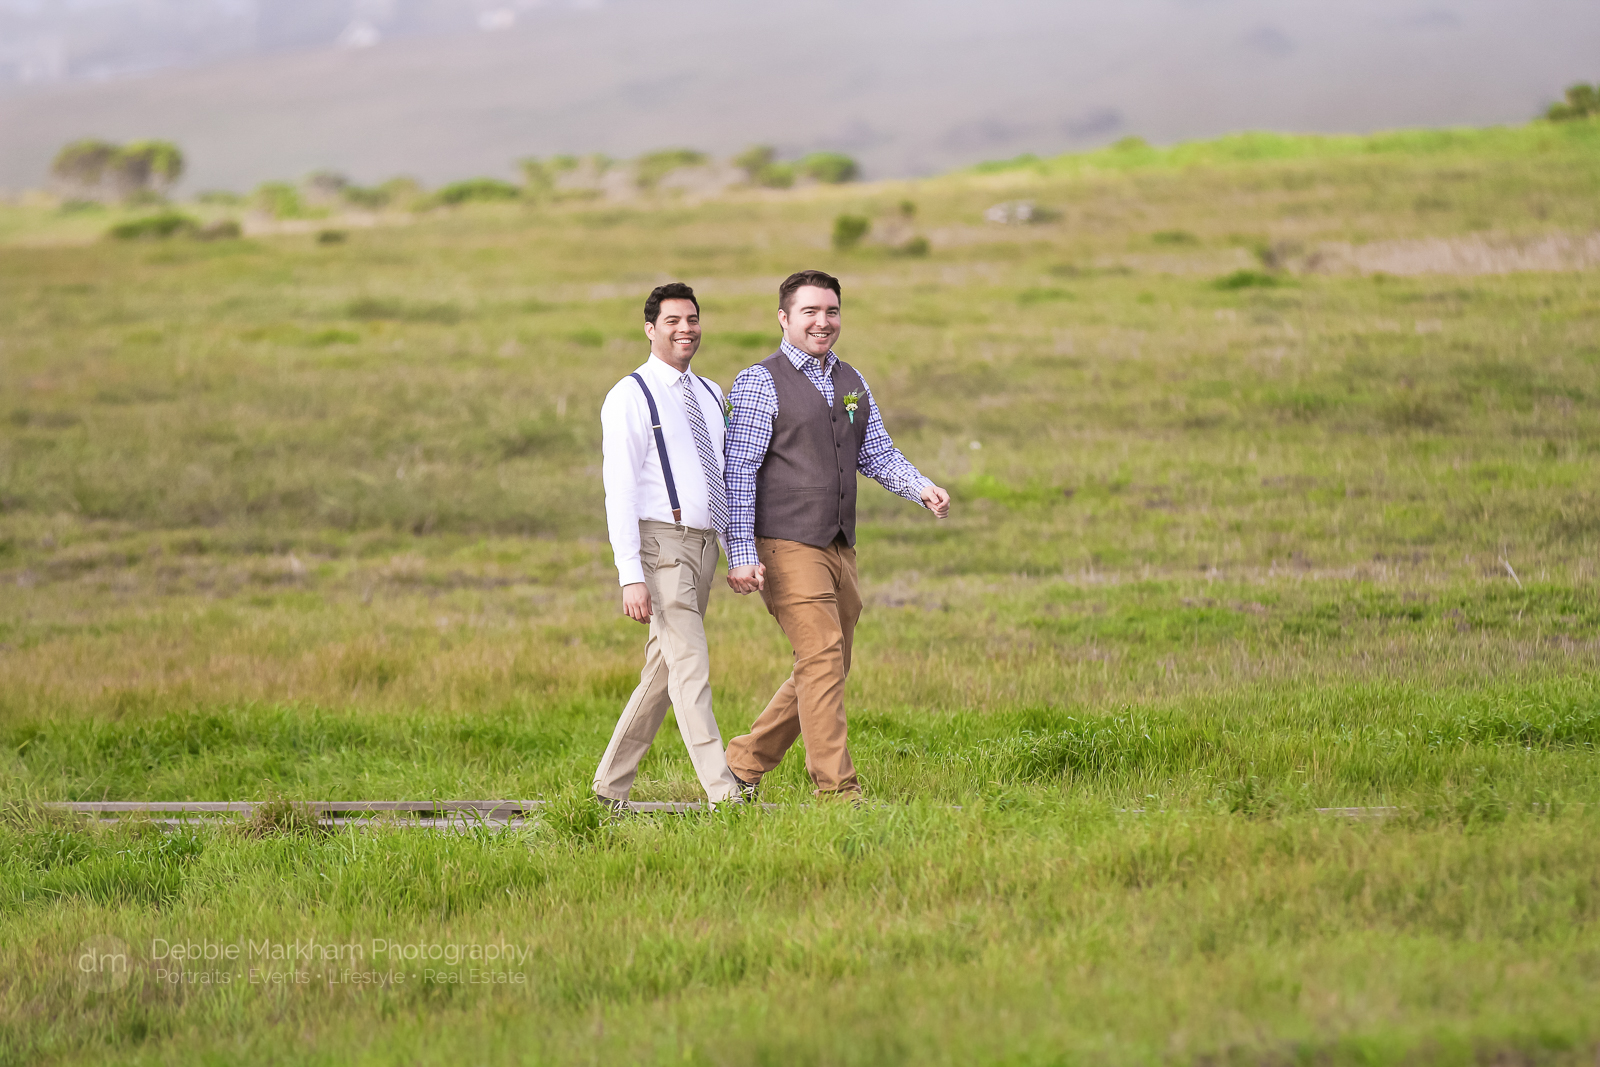 A+R_Gay Wedding_Portraits_Married_Cambria_Robin's_California_Coast__Photographer-15